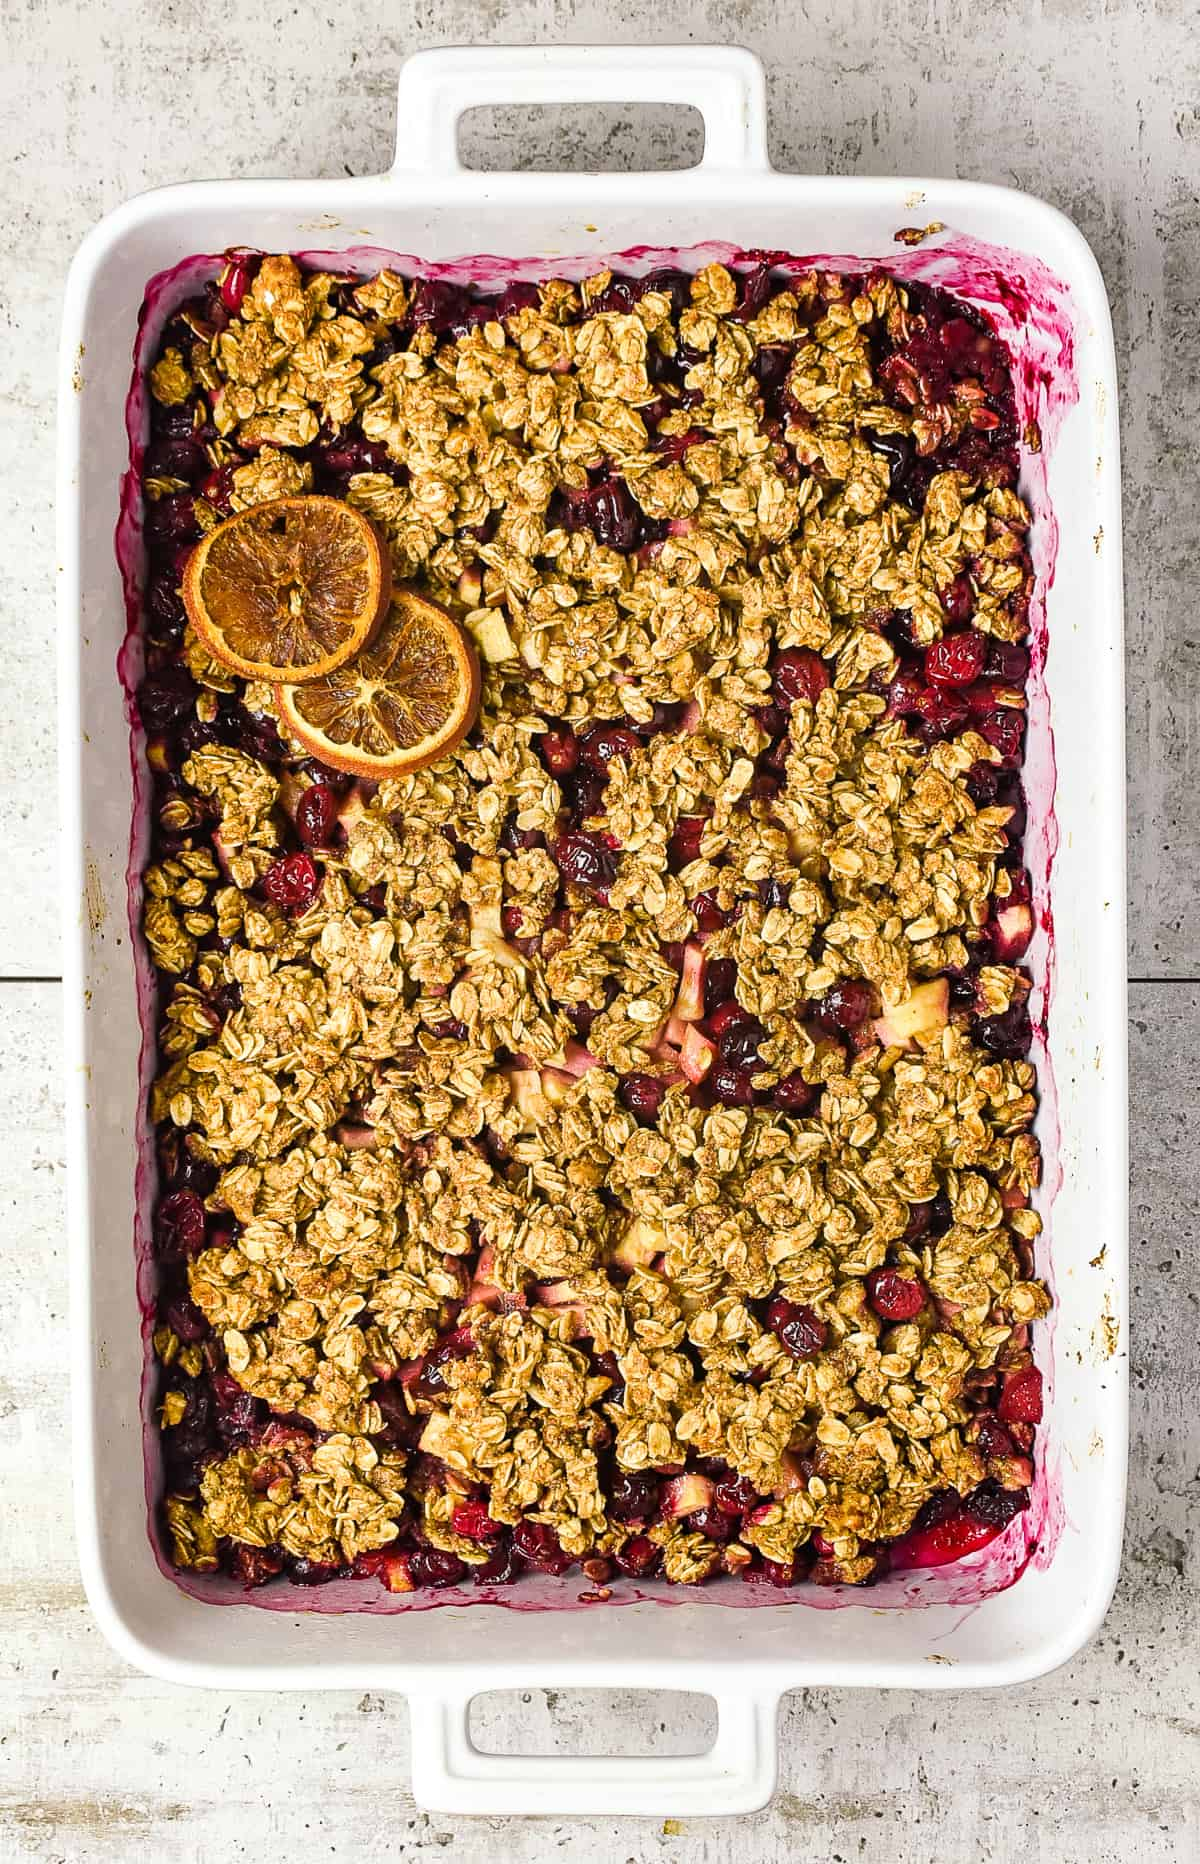 Baking dish of apple cranberry crisp.